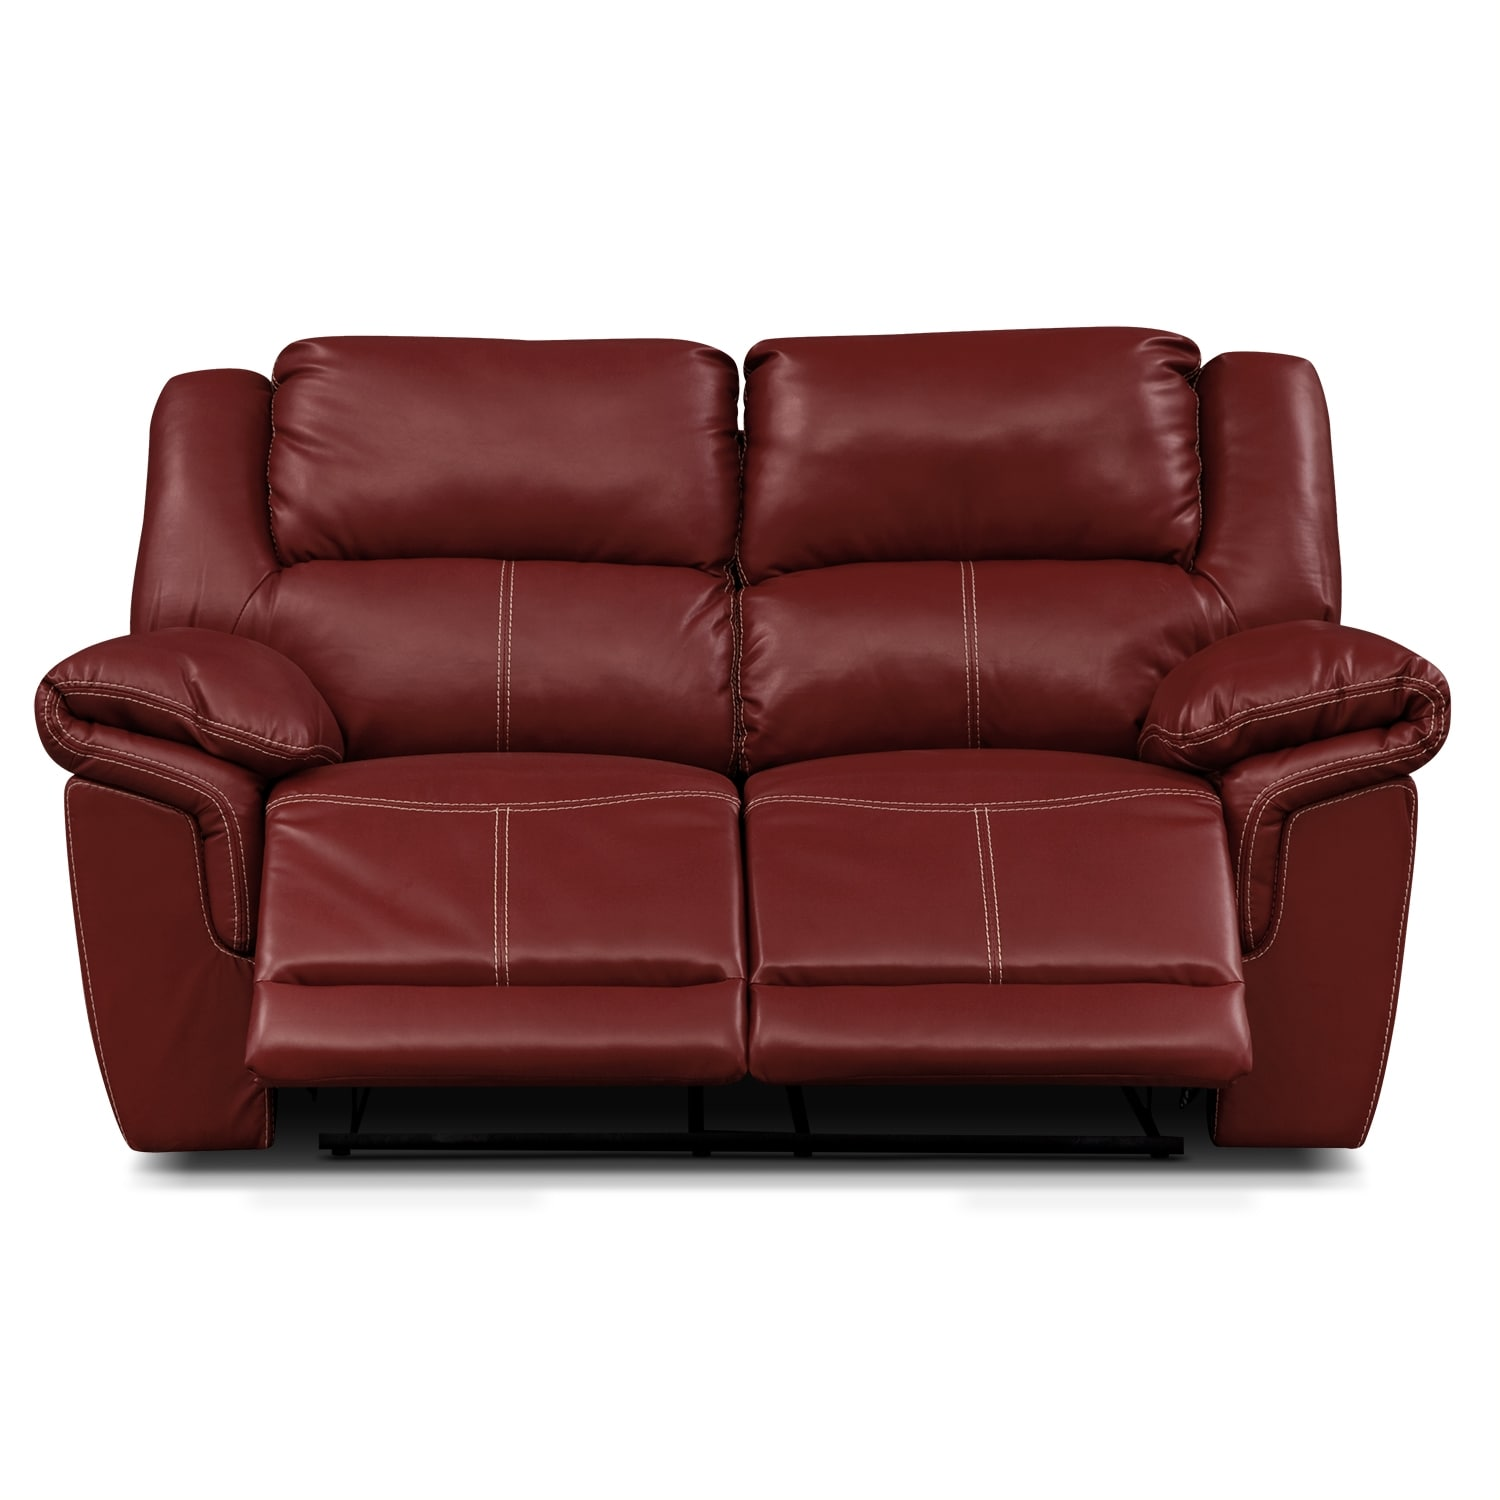 Jaguar ii leather dual reclining loveseat value city furniture Leather loveseat recliners